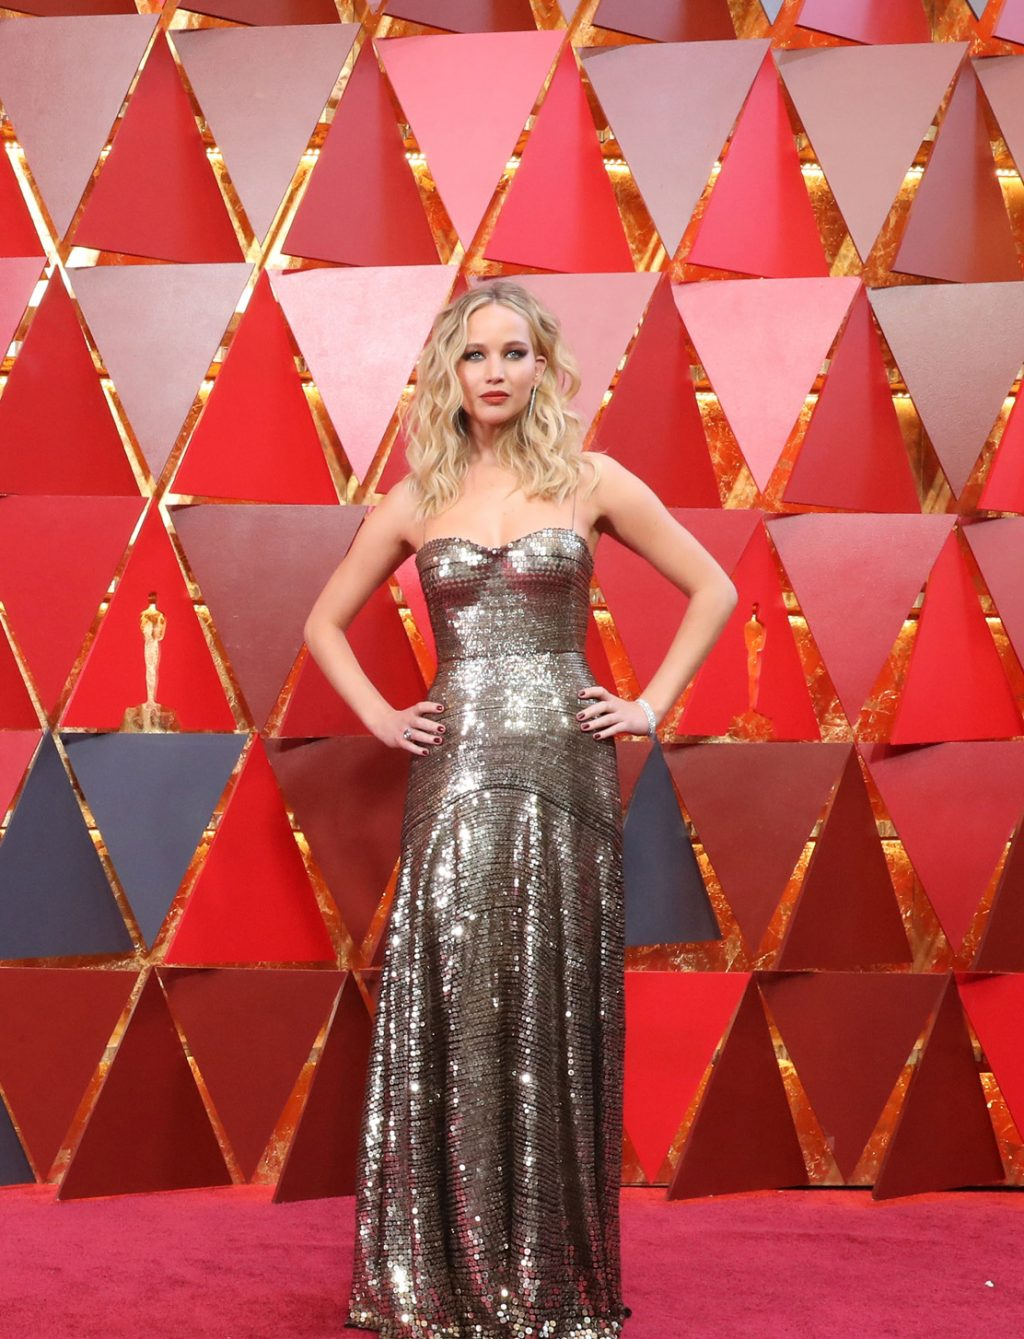 Who Were the Best-Dressed Celebrities at the 2018 Oscars? You Decide